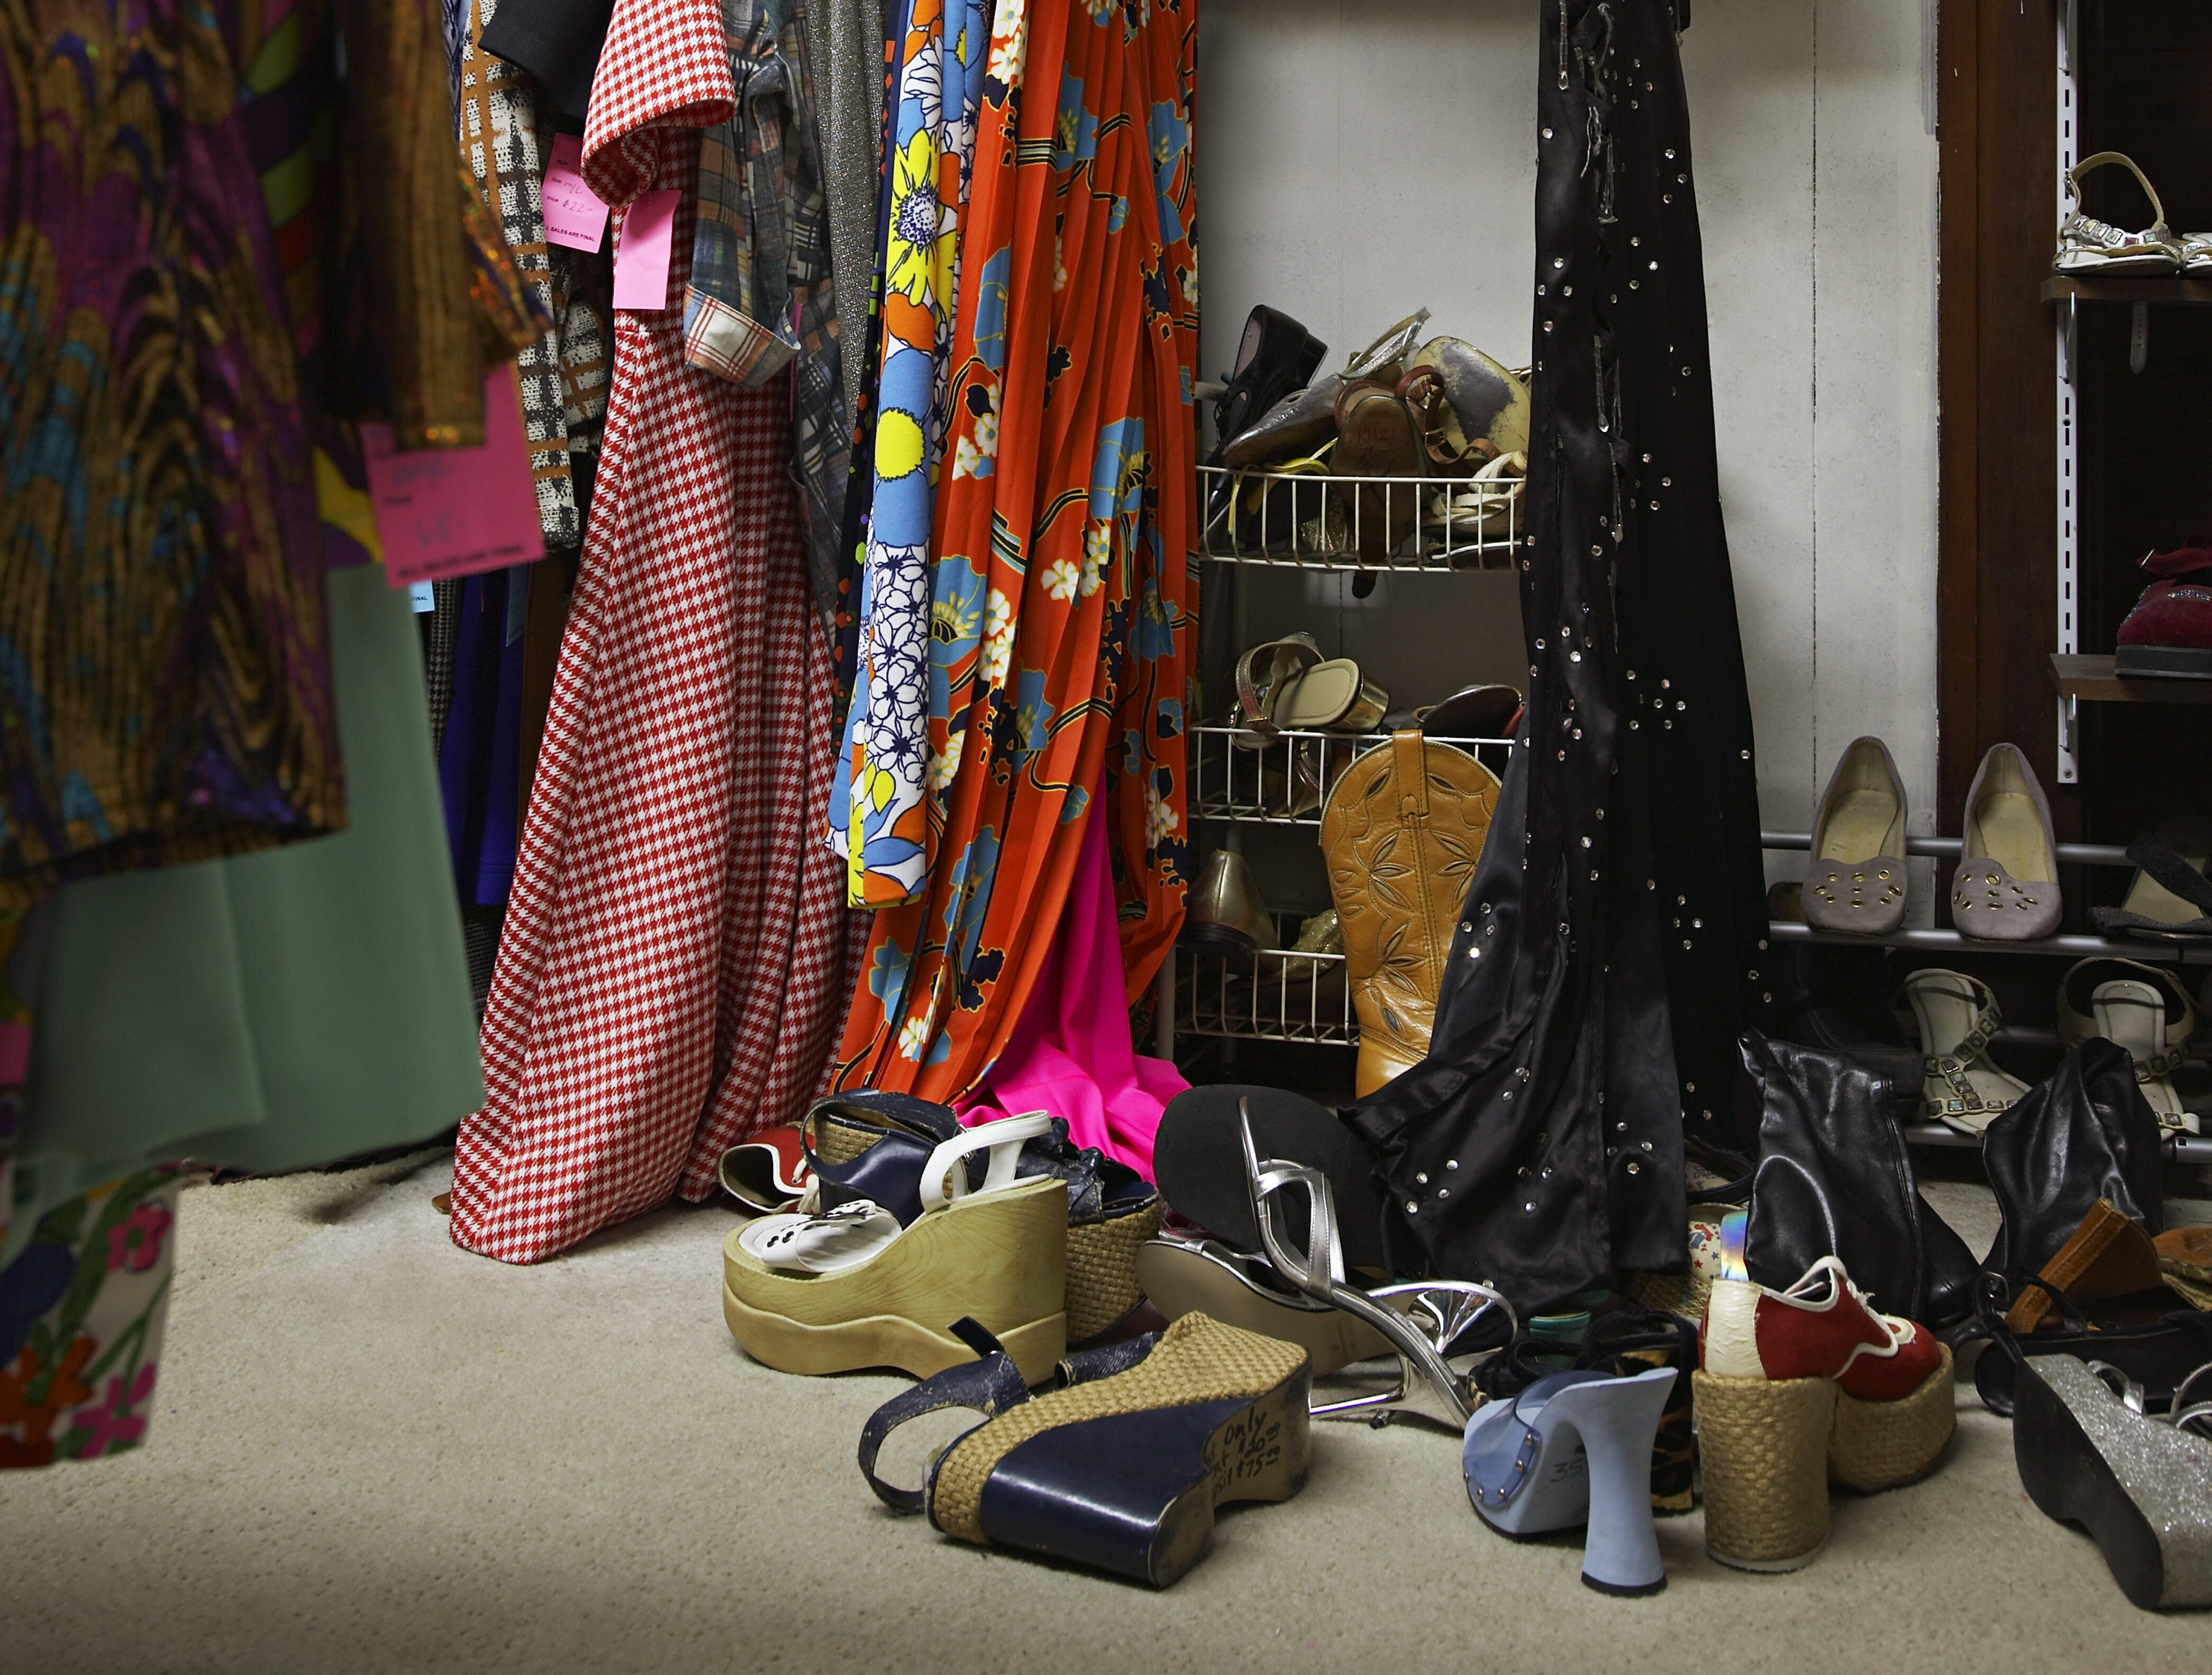 Crowded clothing racks and piled shoes in thrift store